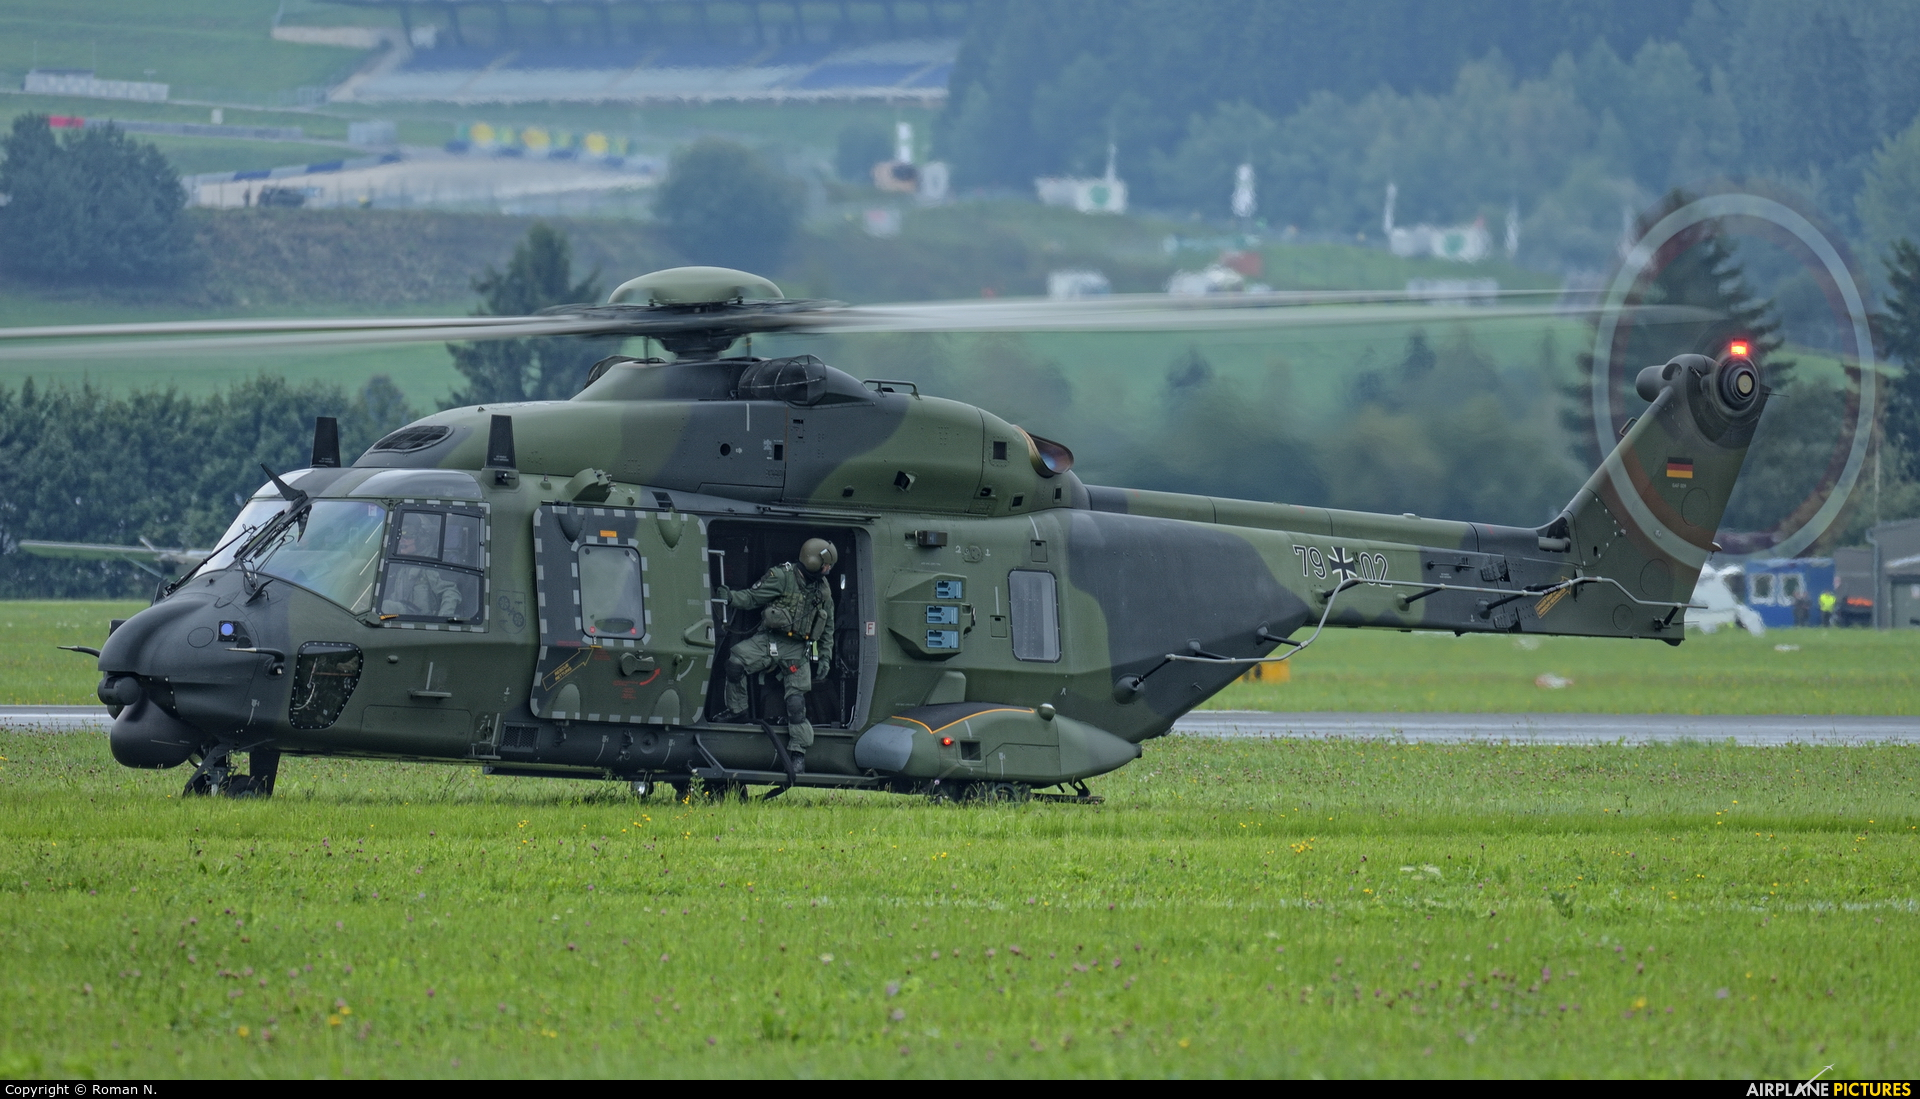 Germany - Air Force 79+02 aircraft at Zeltweg